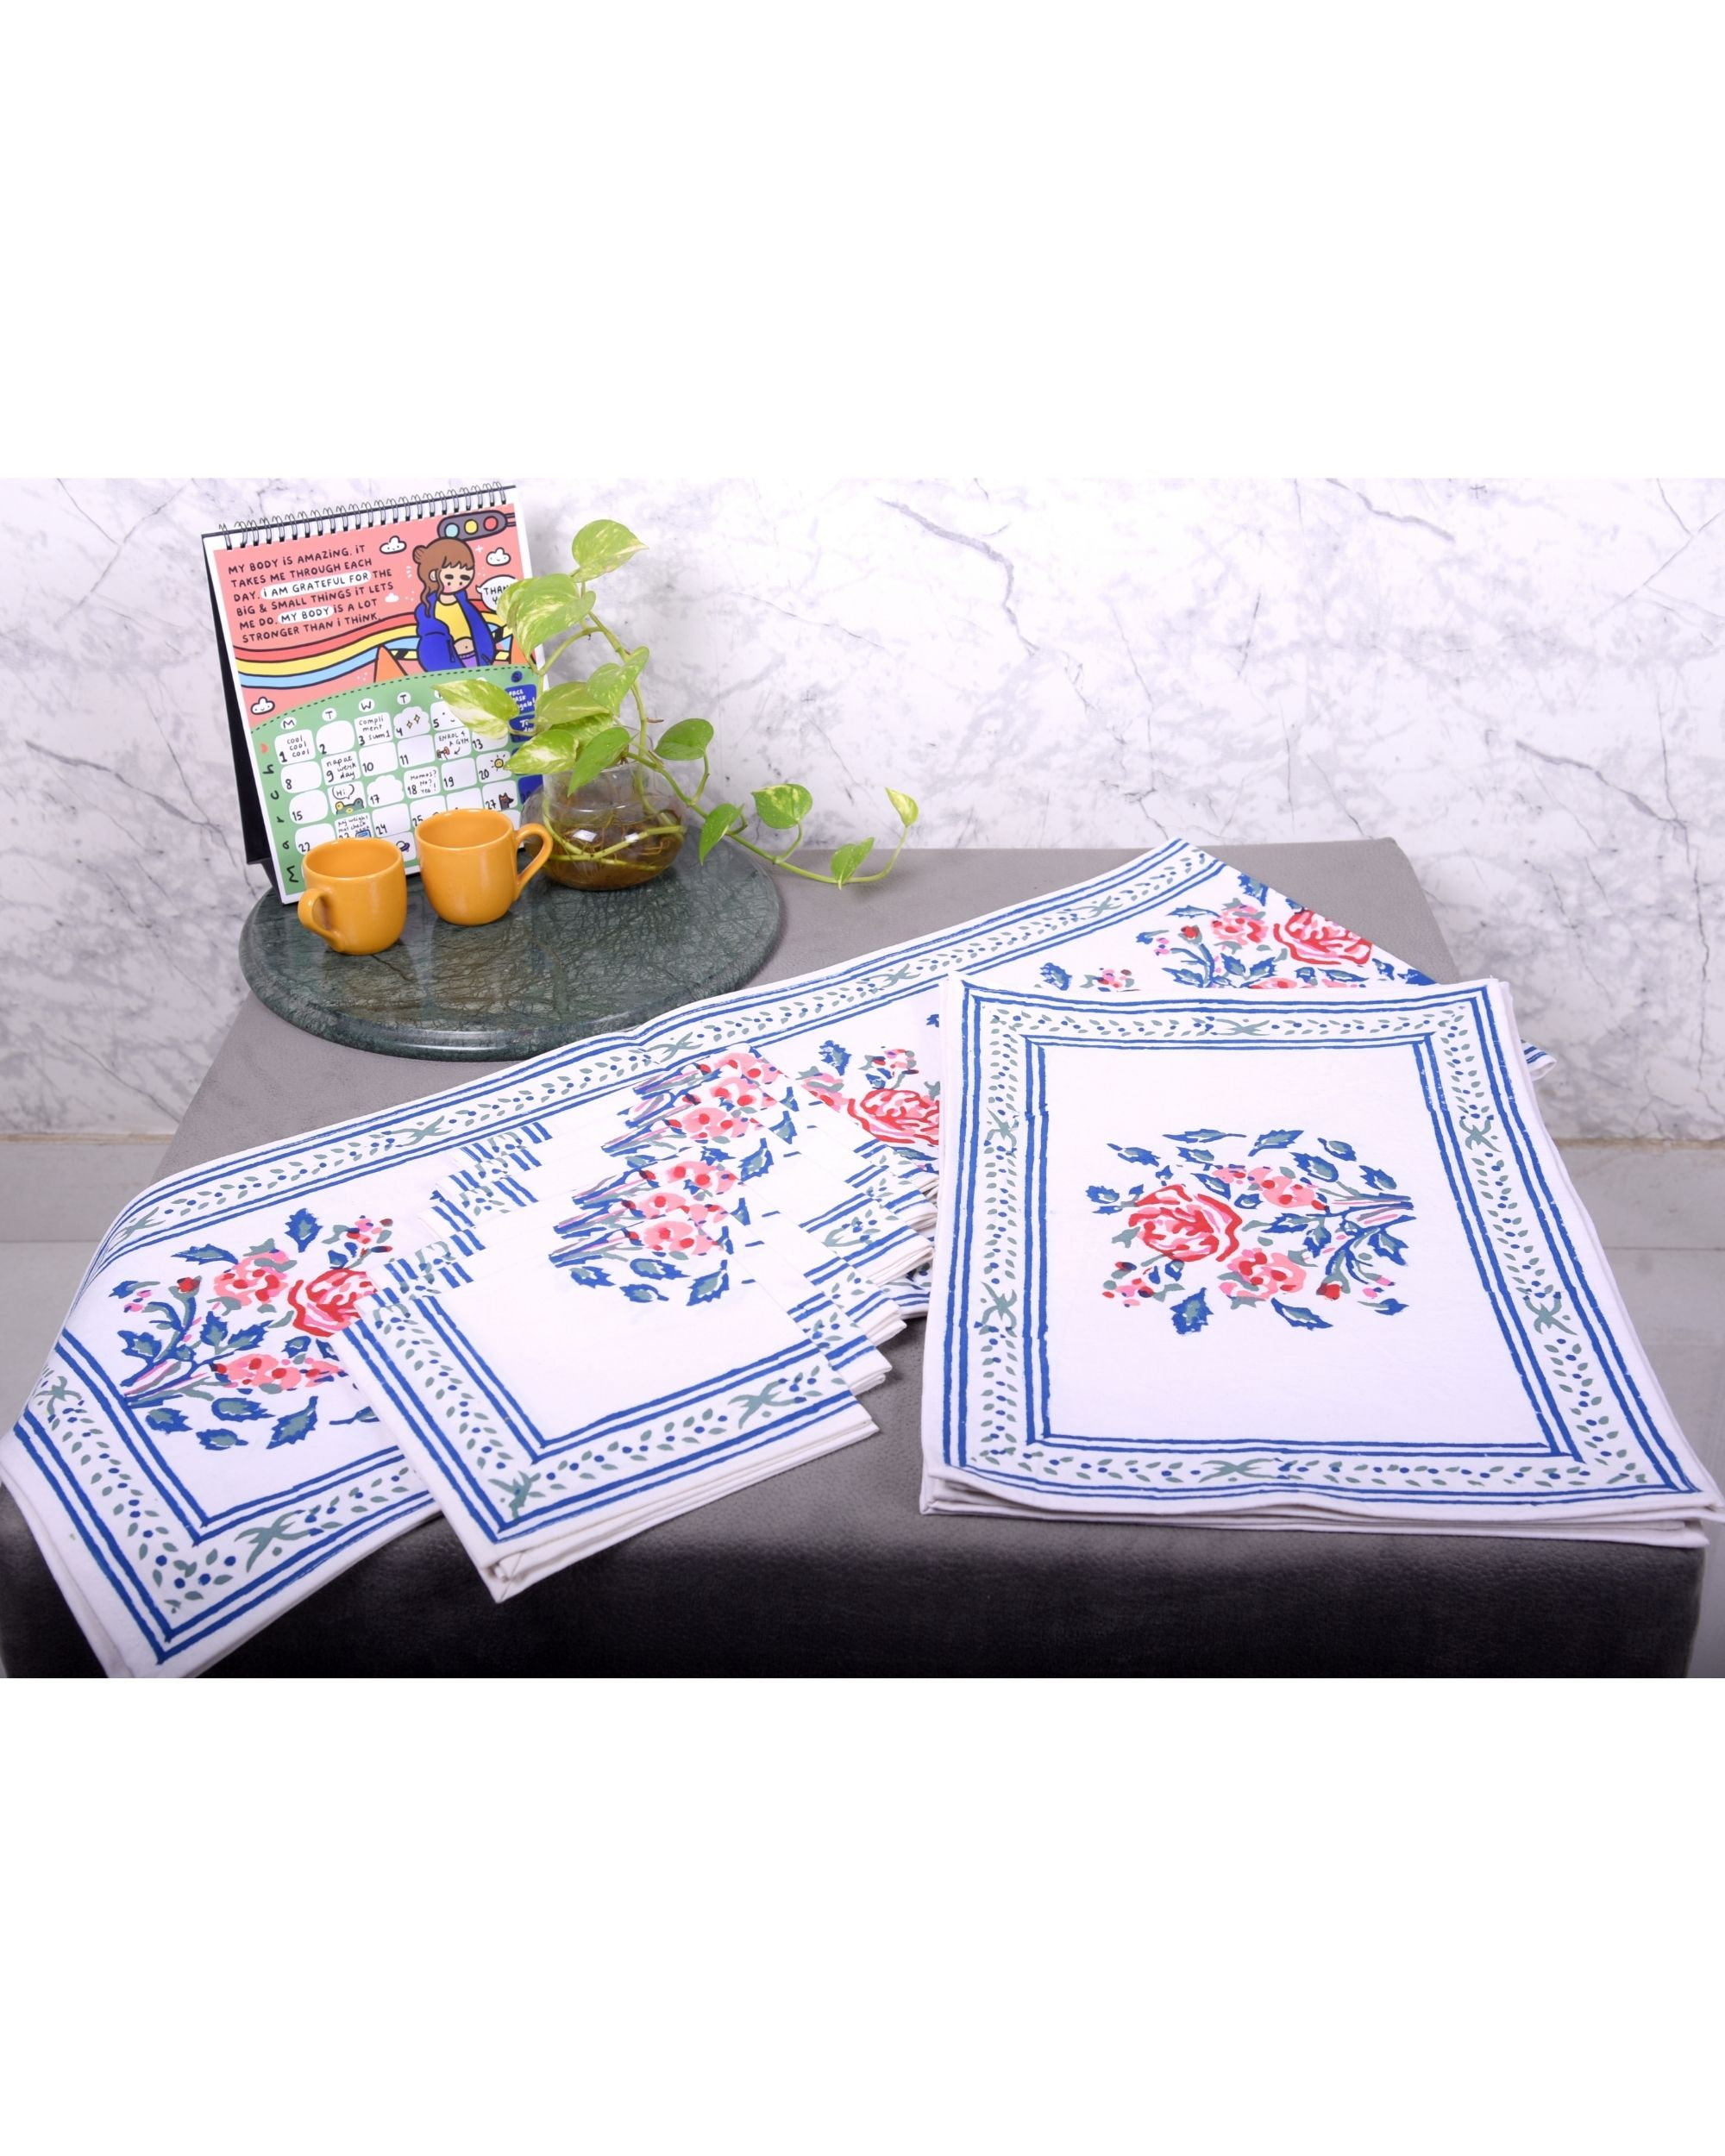 Blue floral printed table runner, table mats and napkins - set of 13